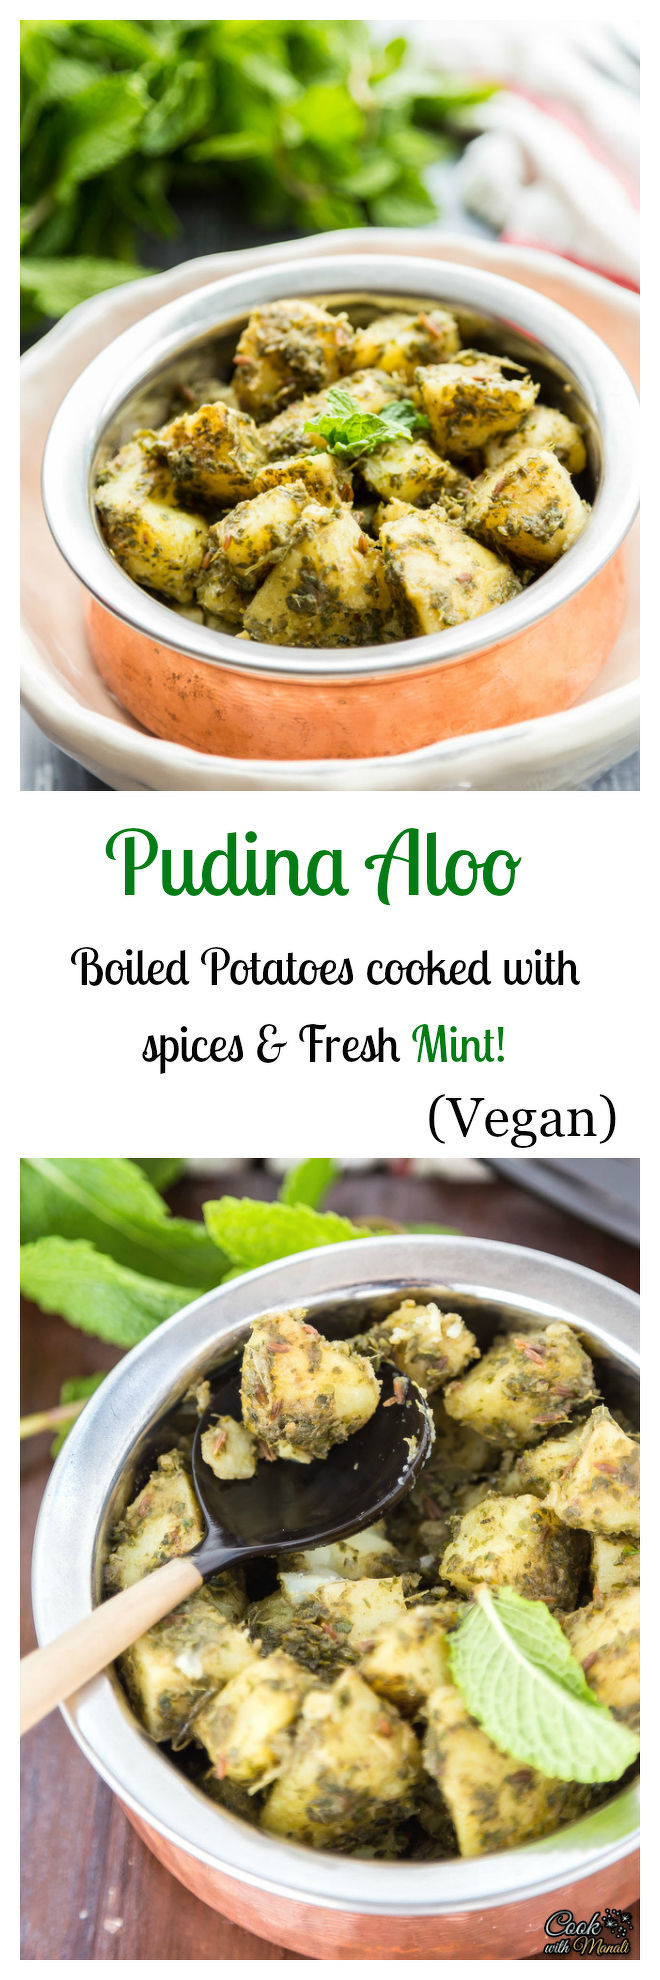 Pudina Aloo Collage-nocwm